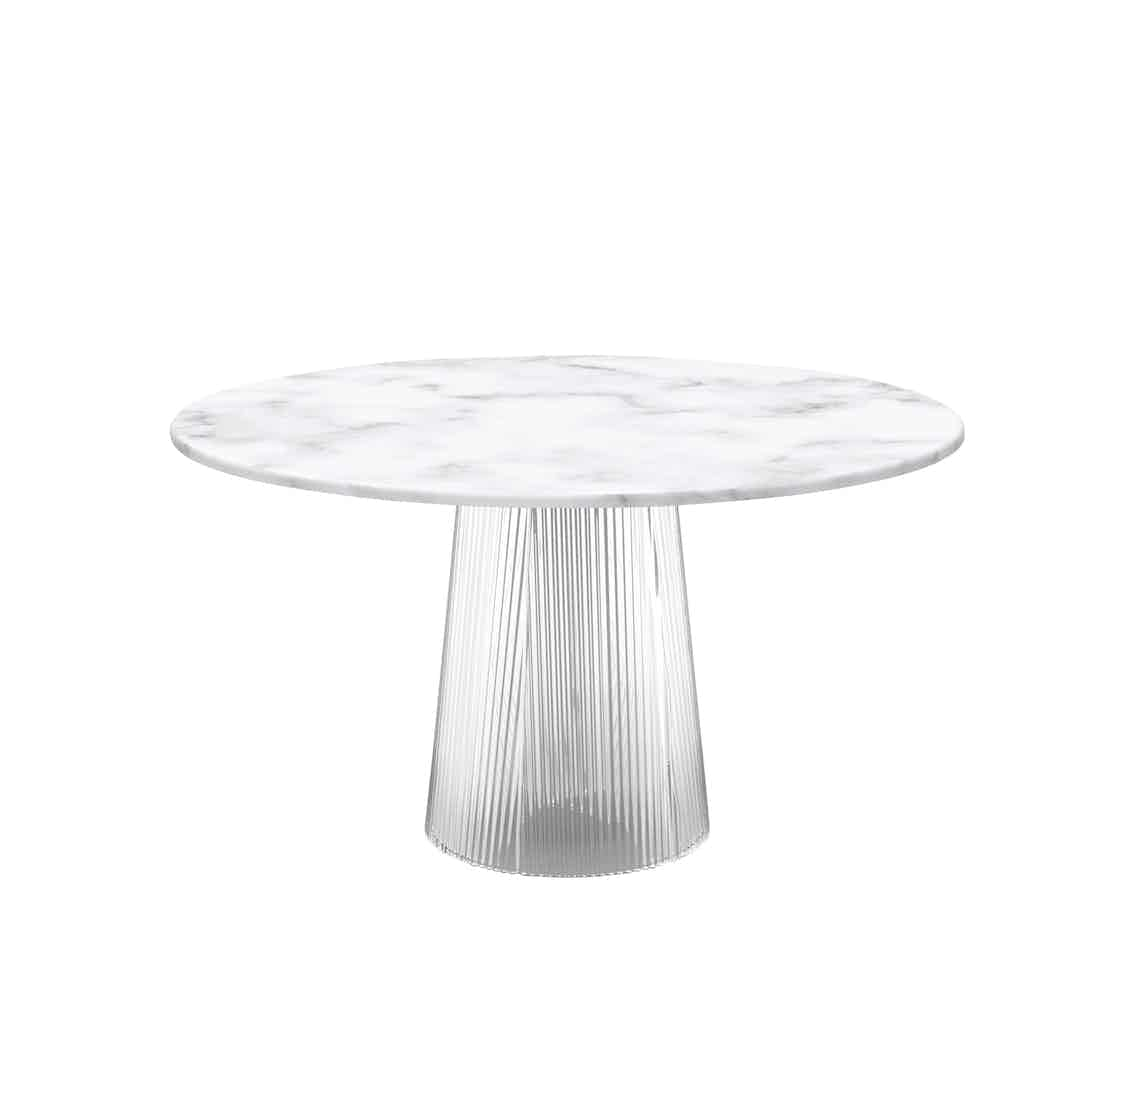 Pulpo-bent-dining-table-white-top-haute-living